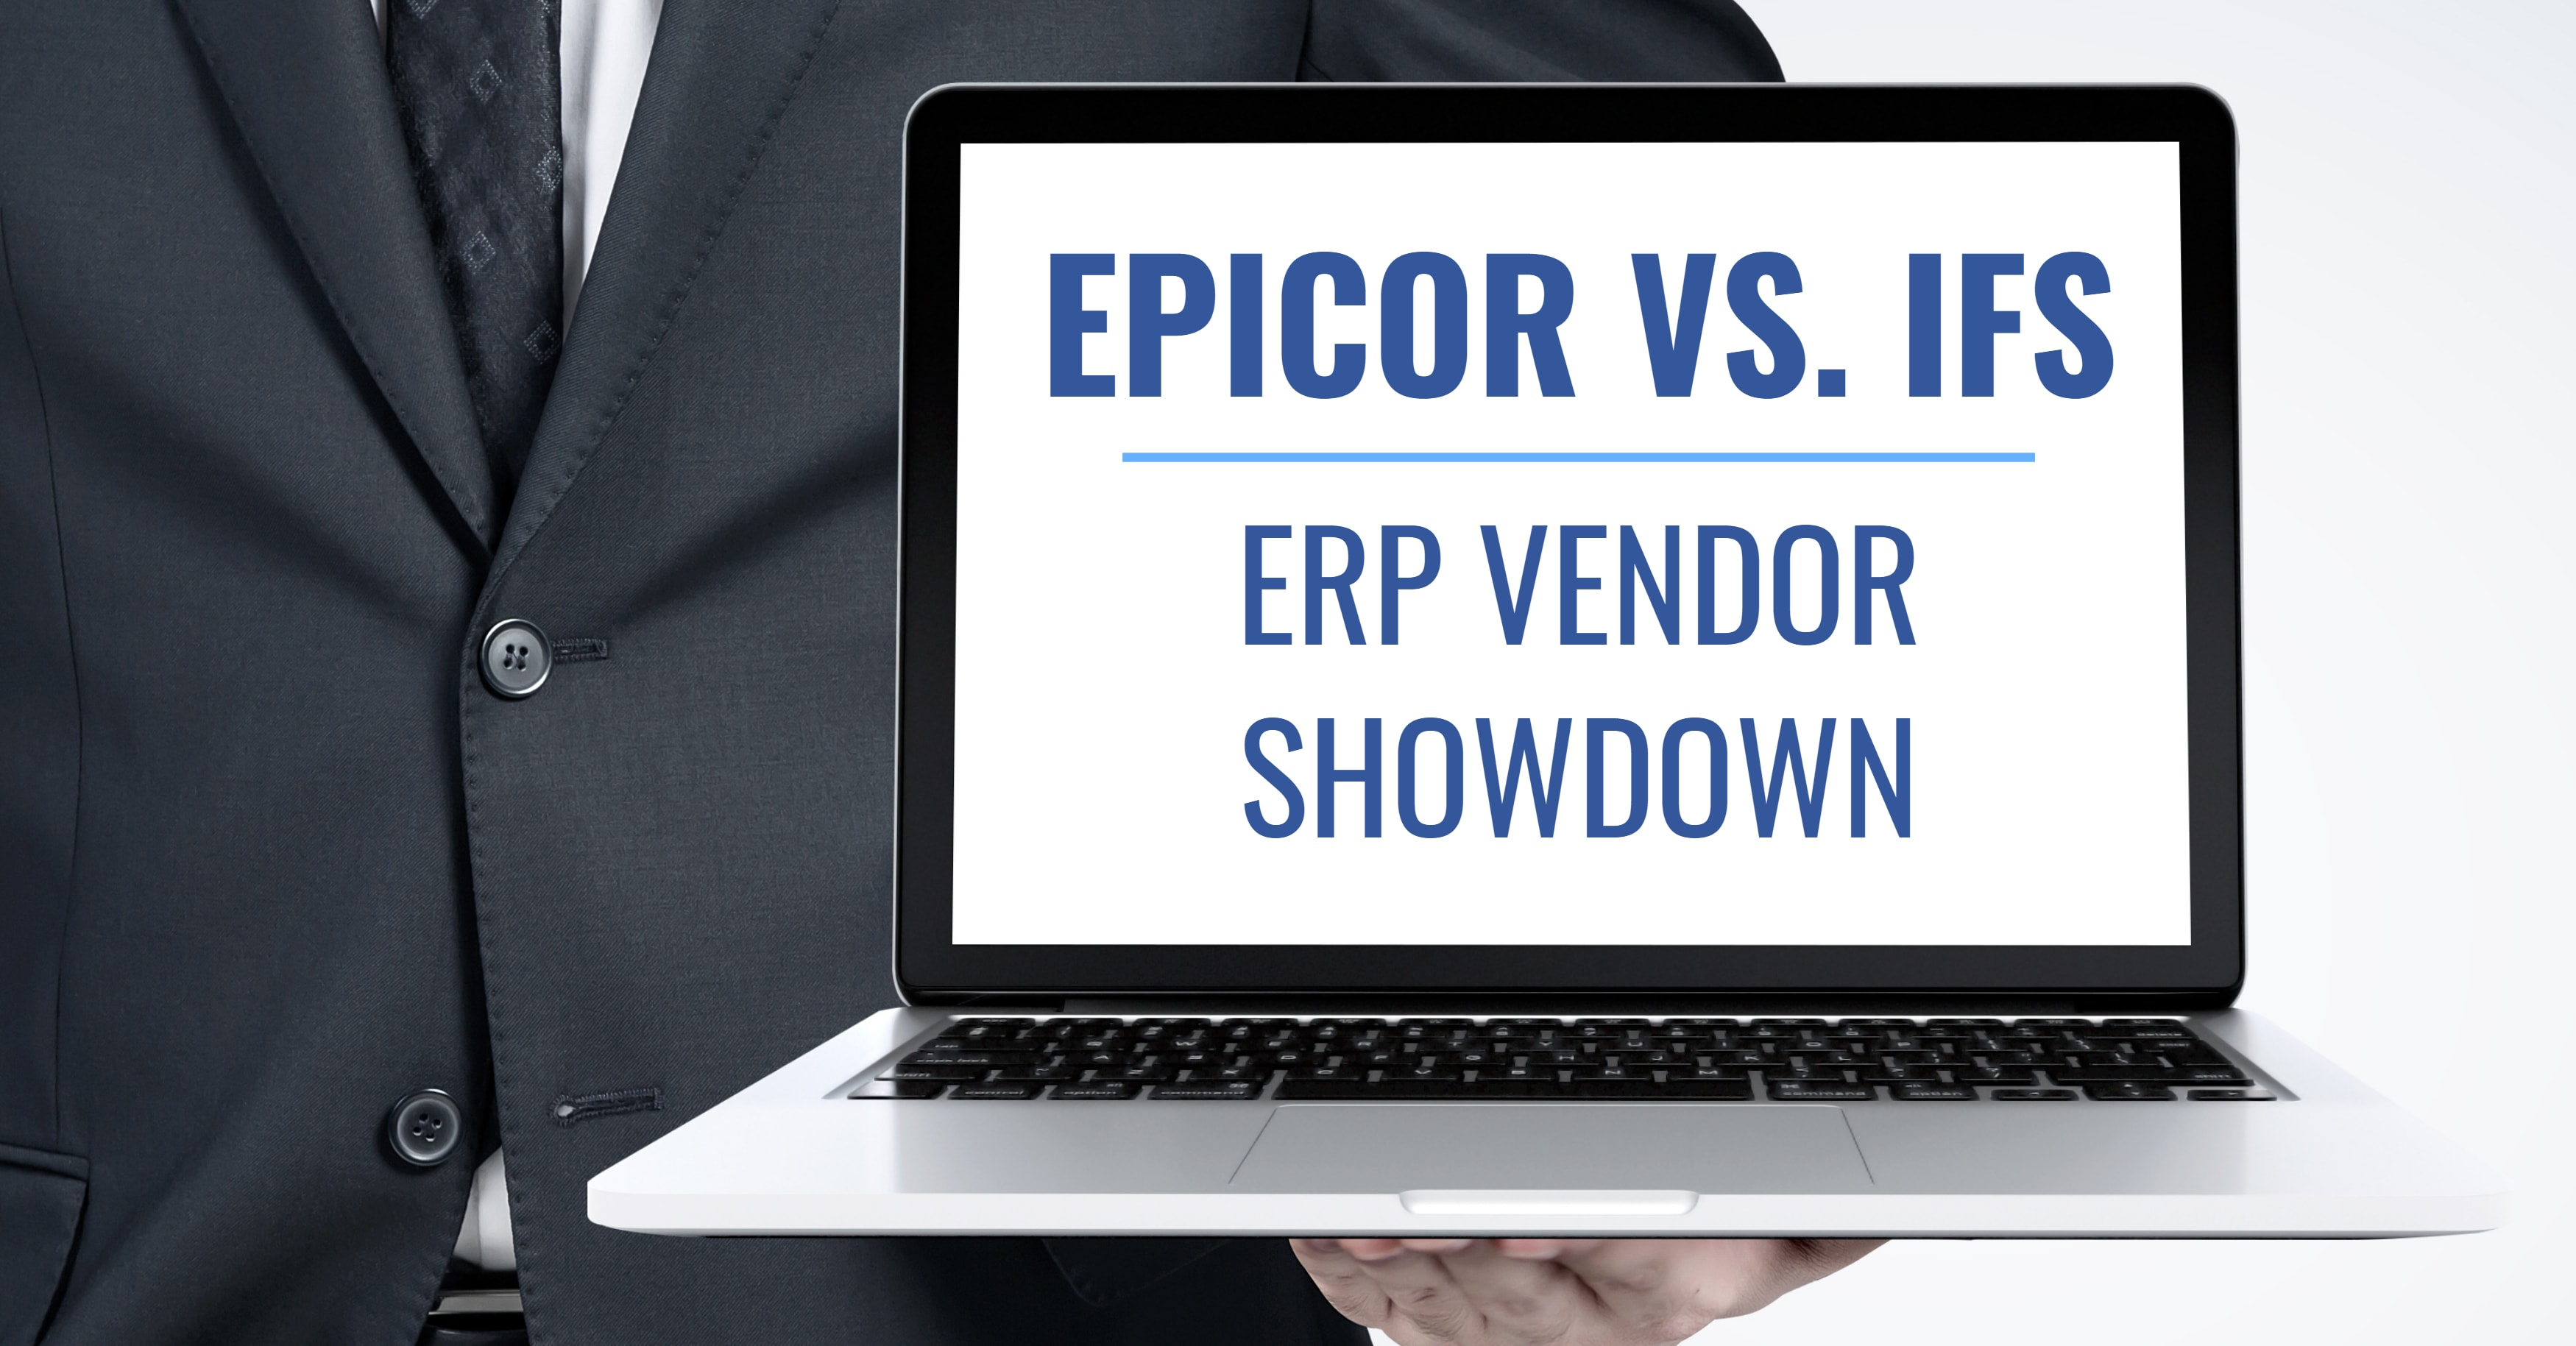 Epicor vs. IFS: ERP Vendor Showdown